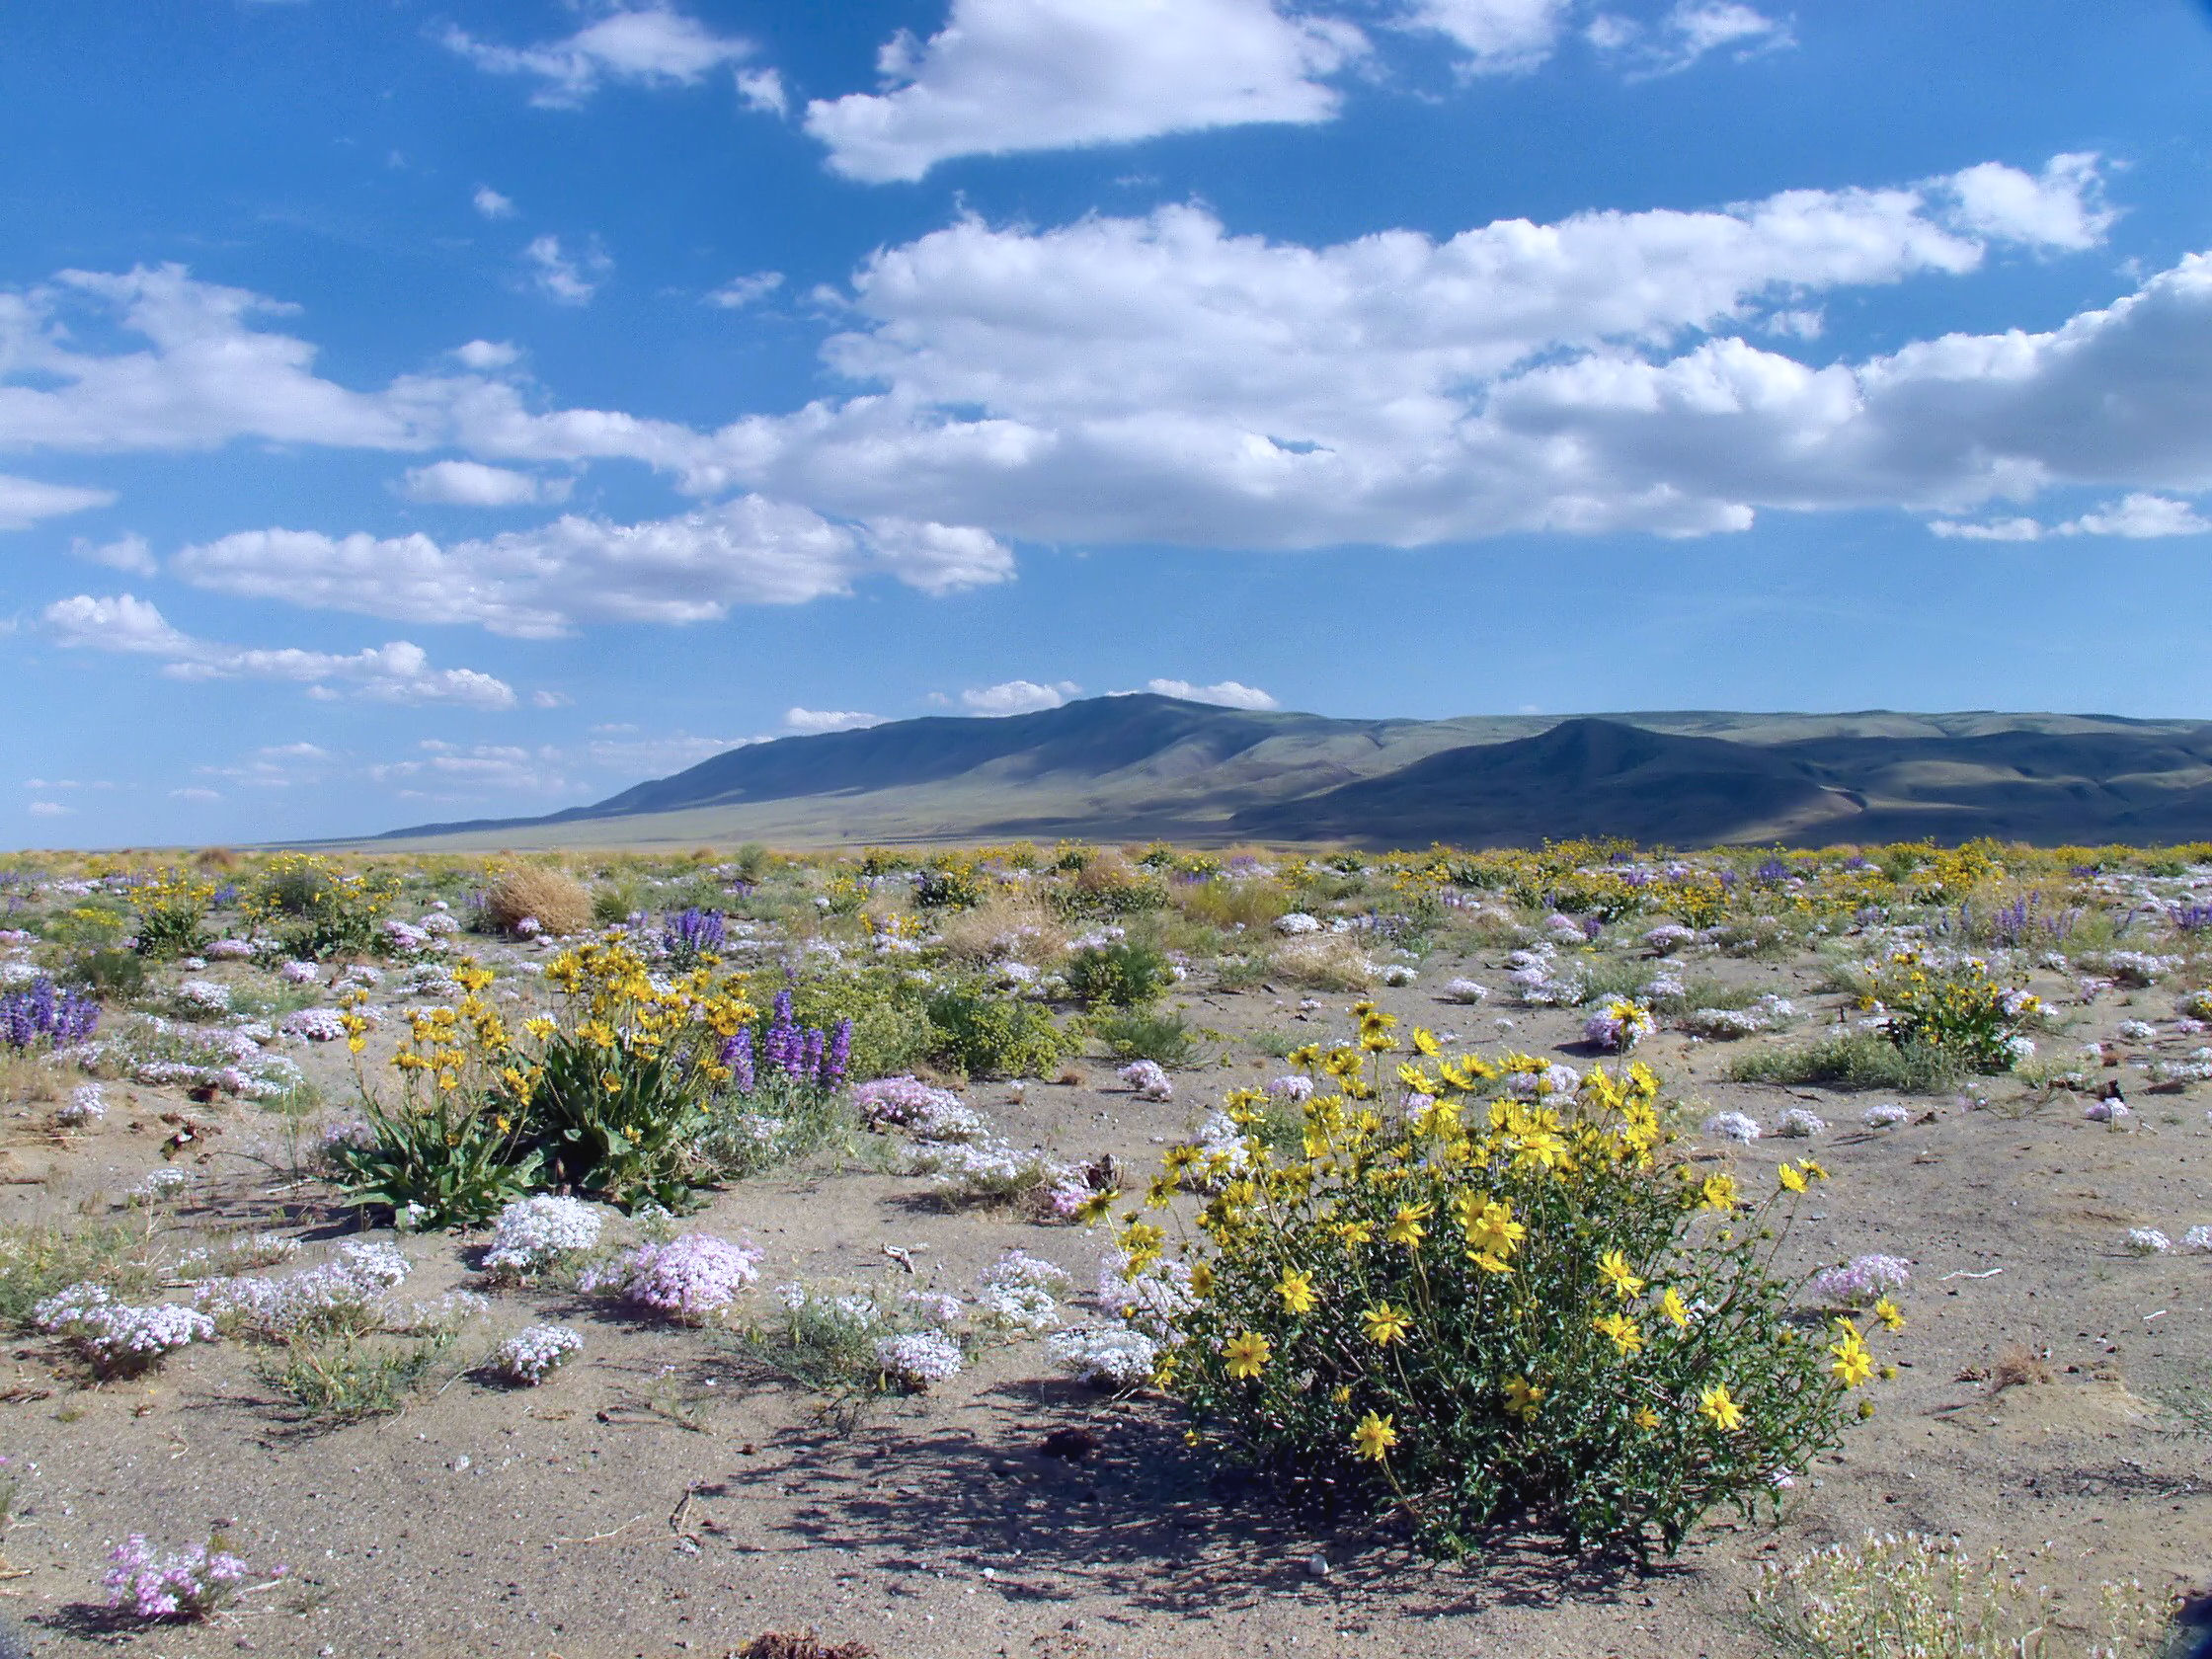 The reach and adjacent lands provide habitat for numerous rare and endangered plants and animals, including several new species that were discovered in the 1990s. Photo by Rich Steele